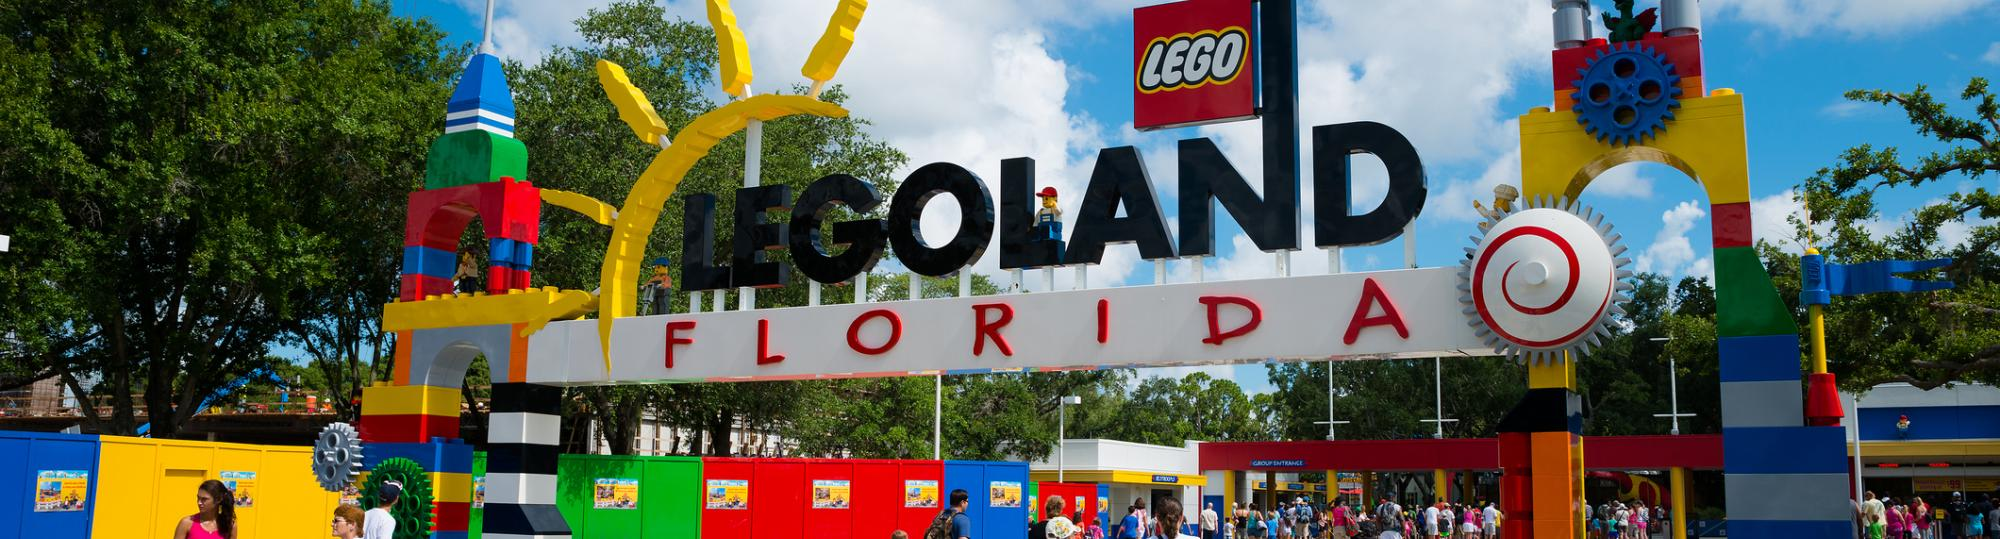 Legoland Florida Military Discount with Veterans Advantage